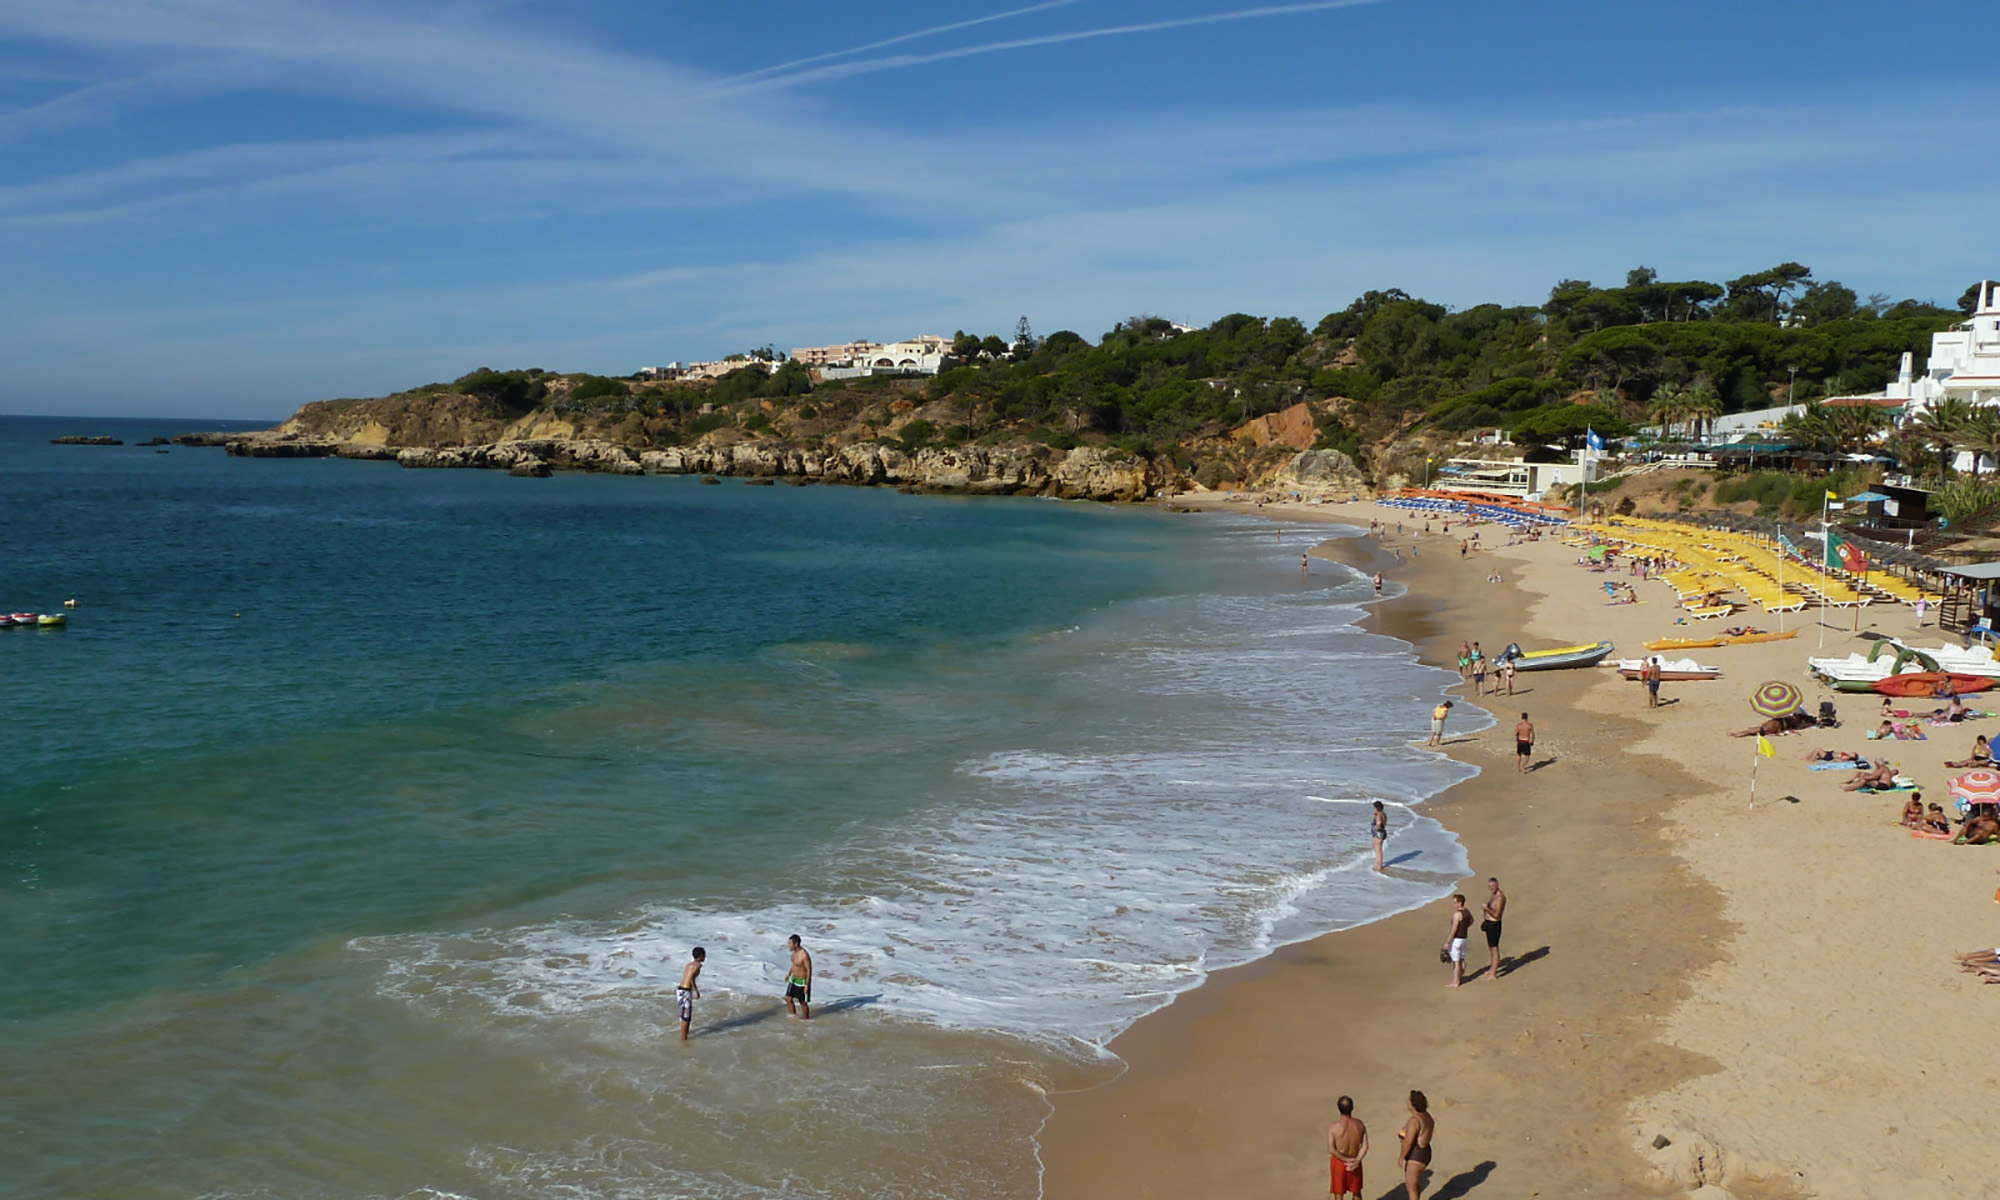 The colourful & lively Praia da Oura beach is also a must visit Blue Flag Beach.